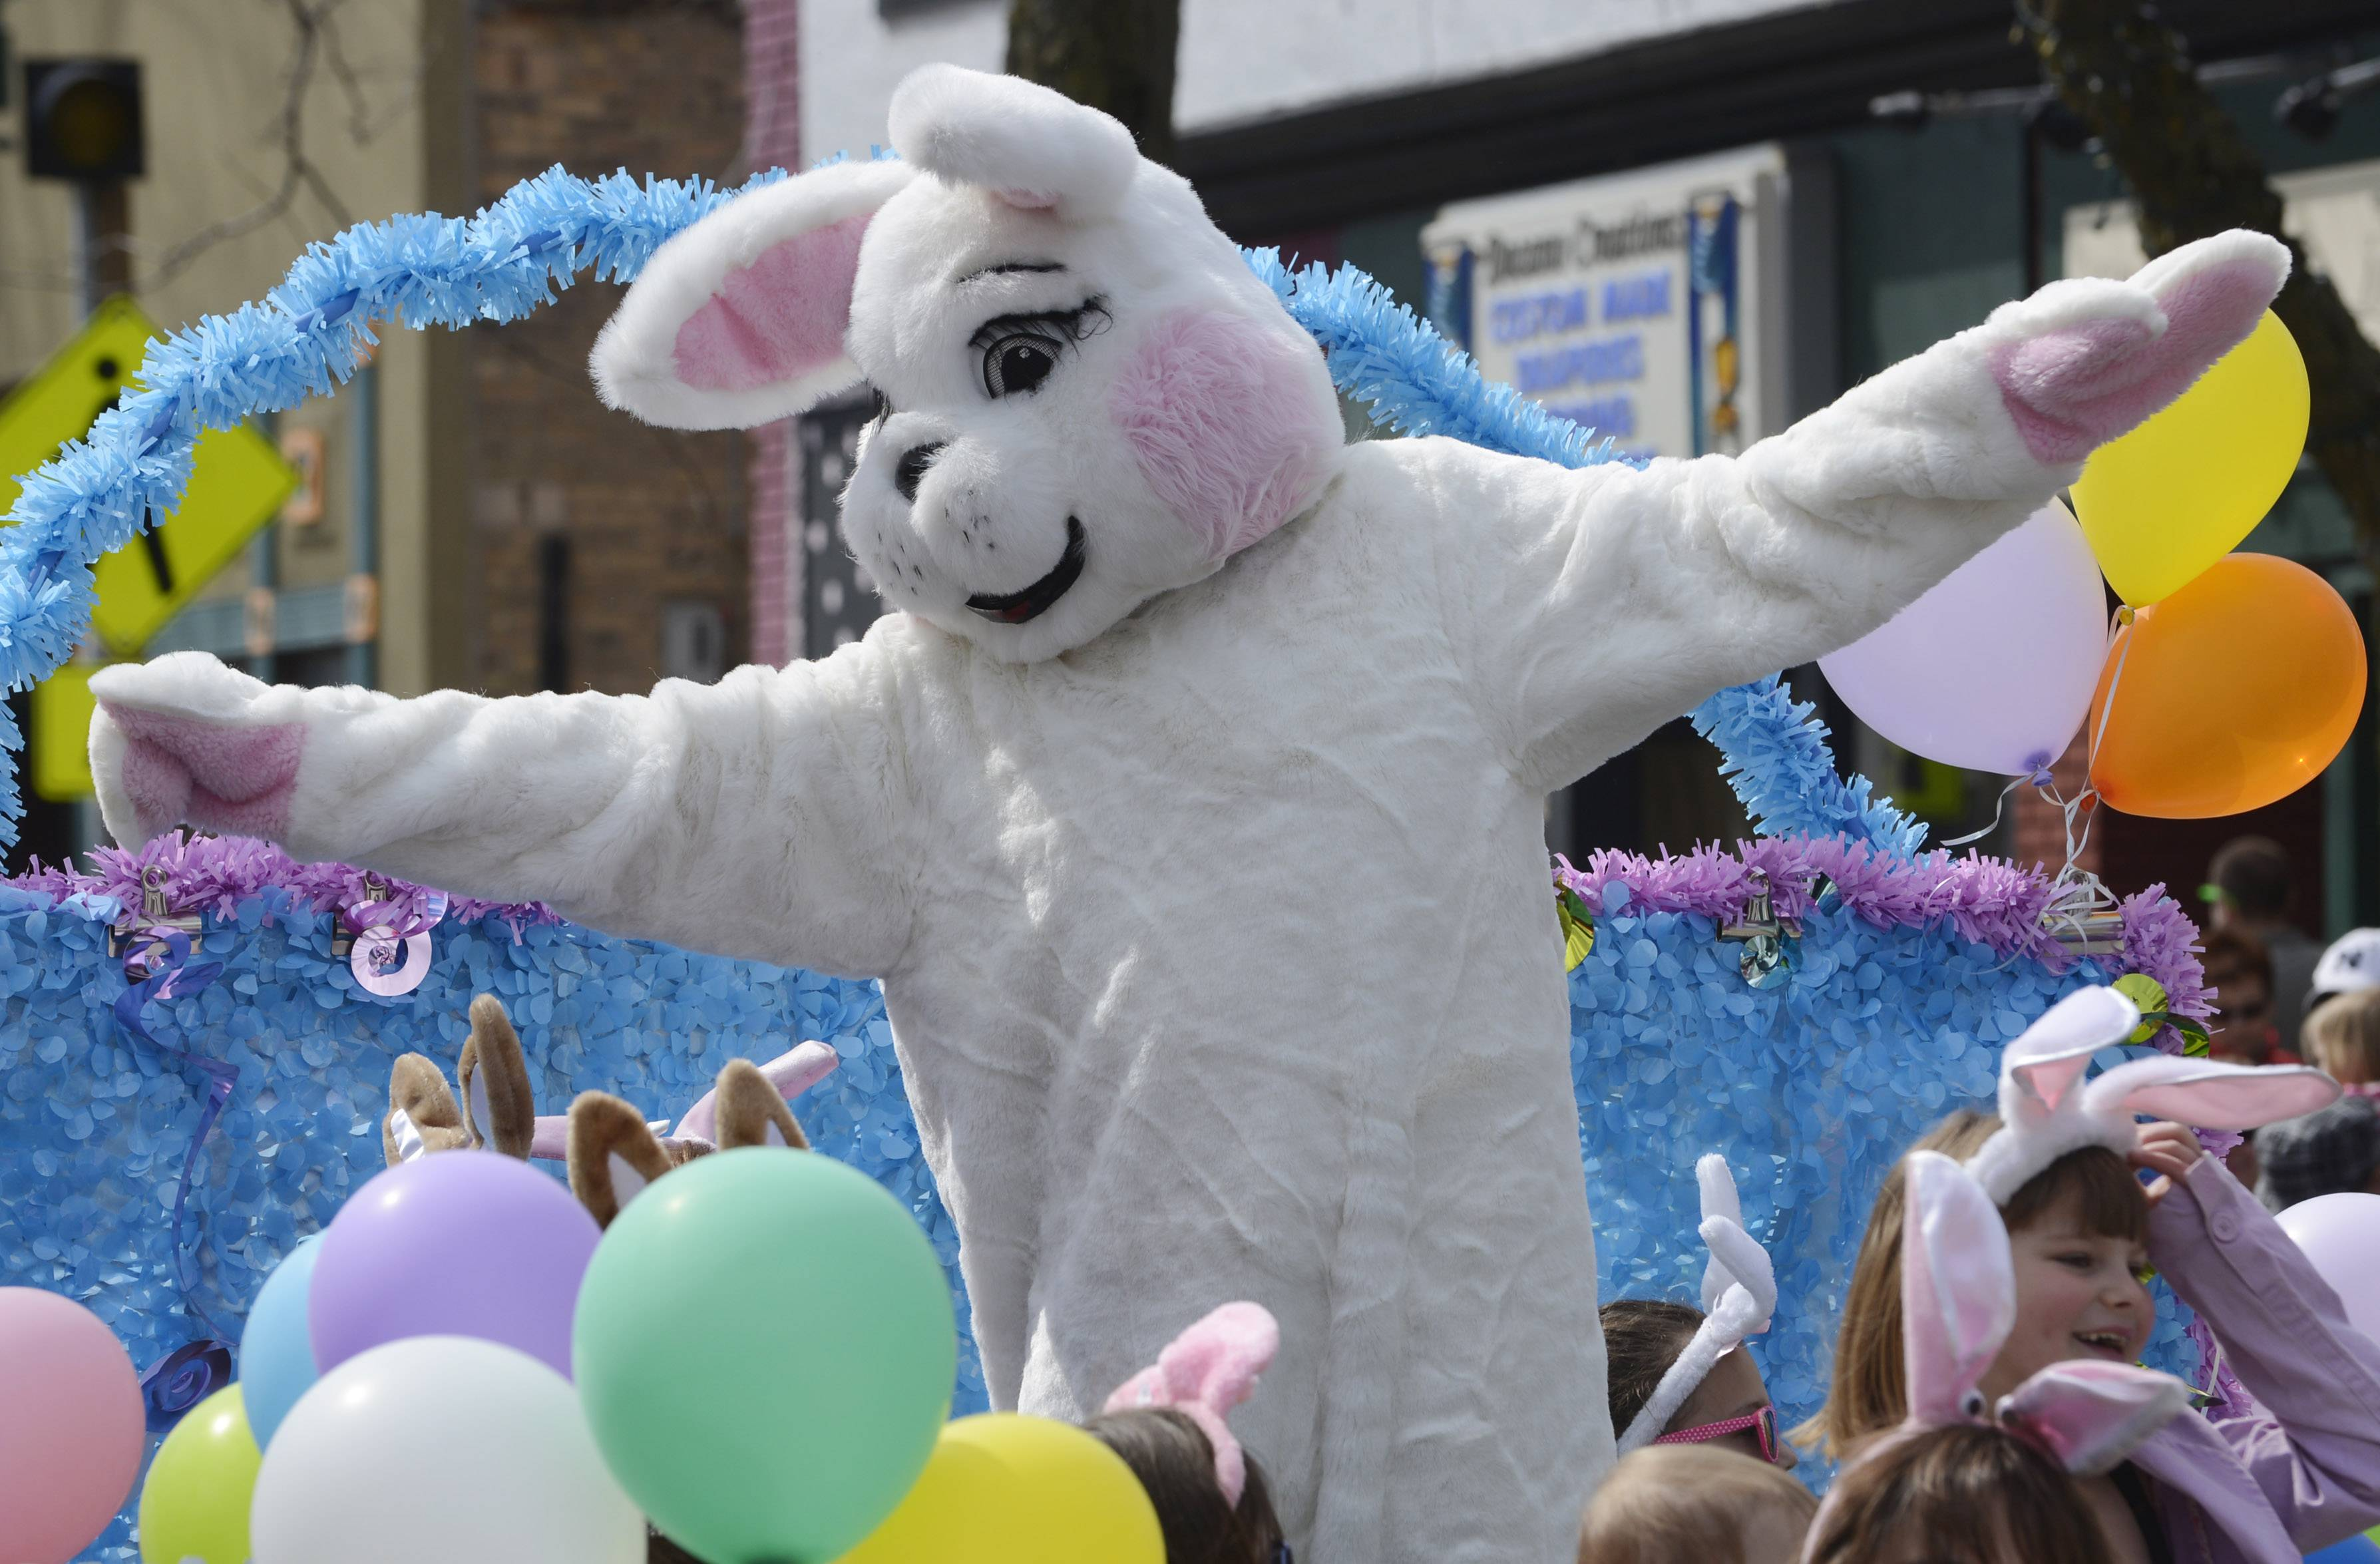 The Easter Bunny rides his float at the conclusion of Saturday's Easter parade on Main Street in Antioch.